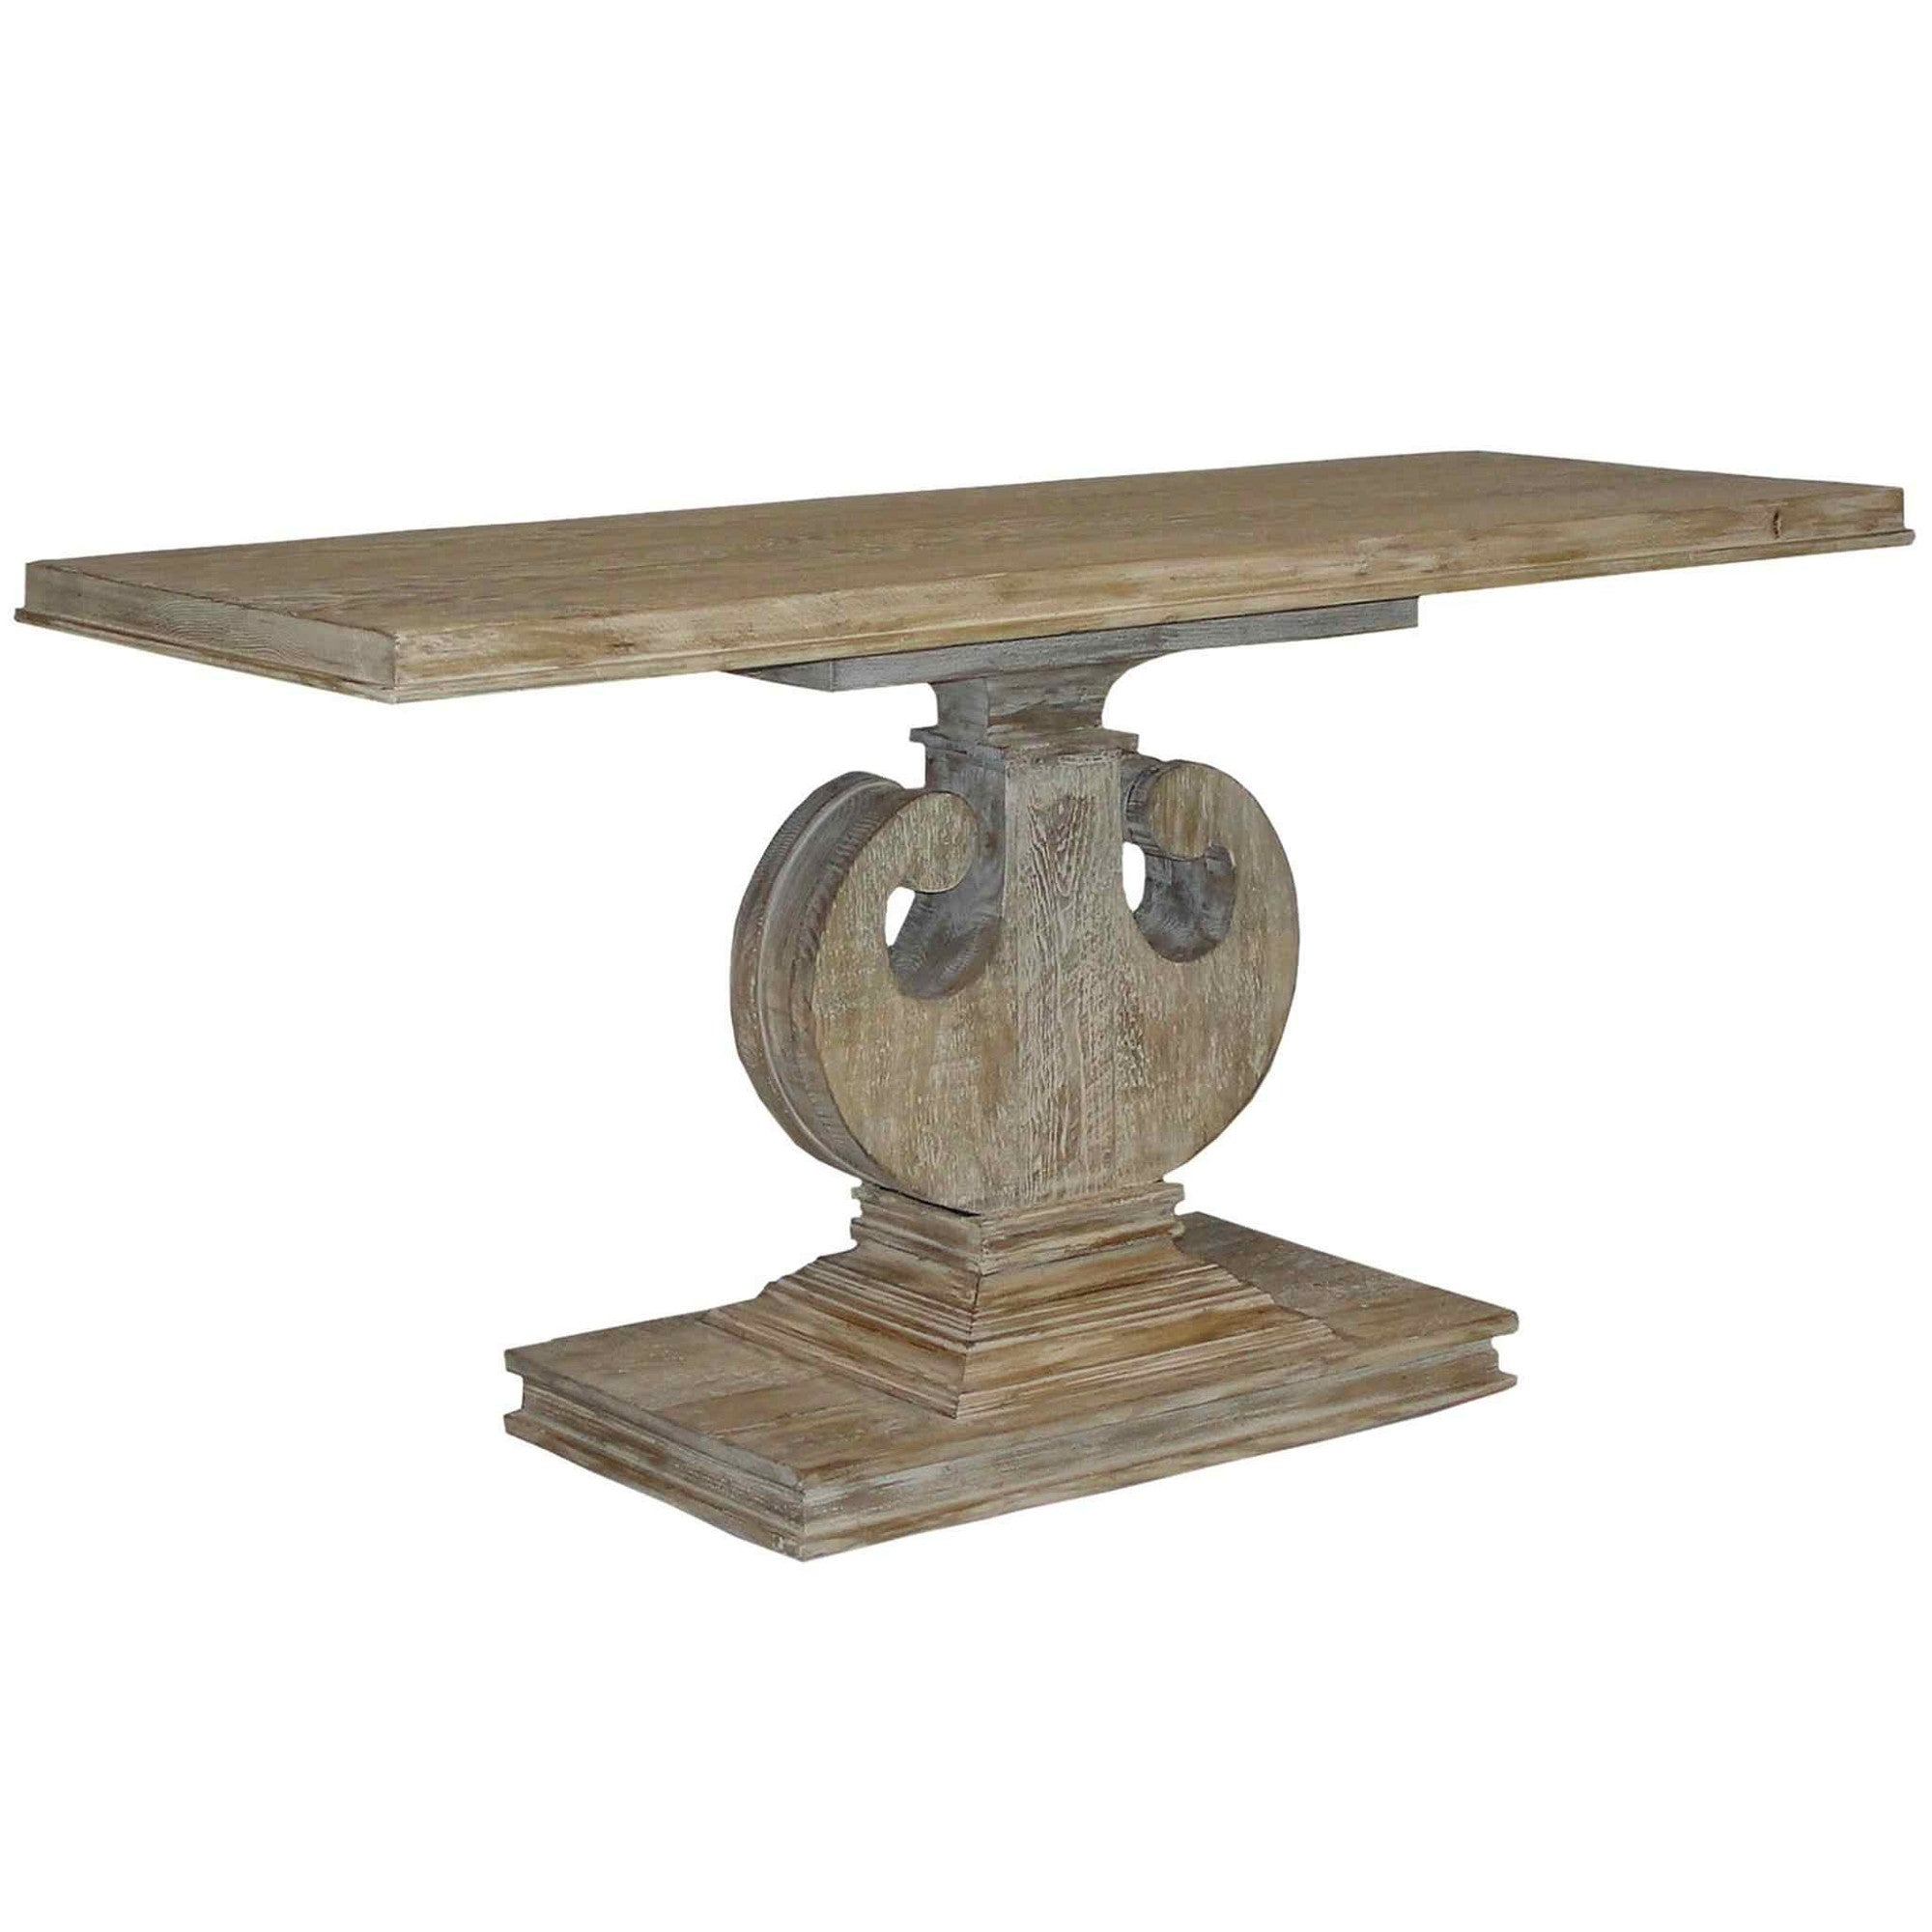 hei console table center tide resizew hall resizeid centers resizeh maine pool obj painted consoles color media cottage